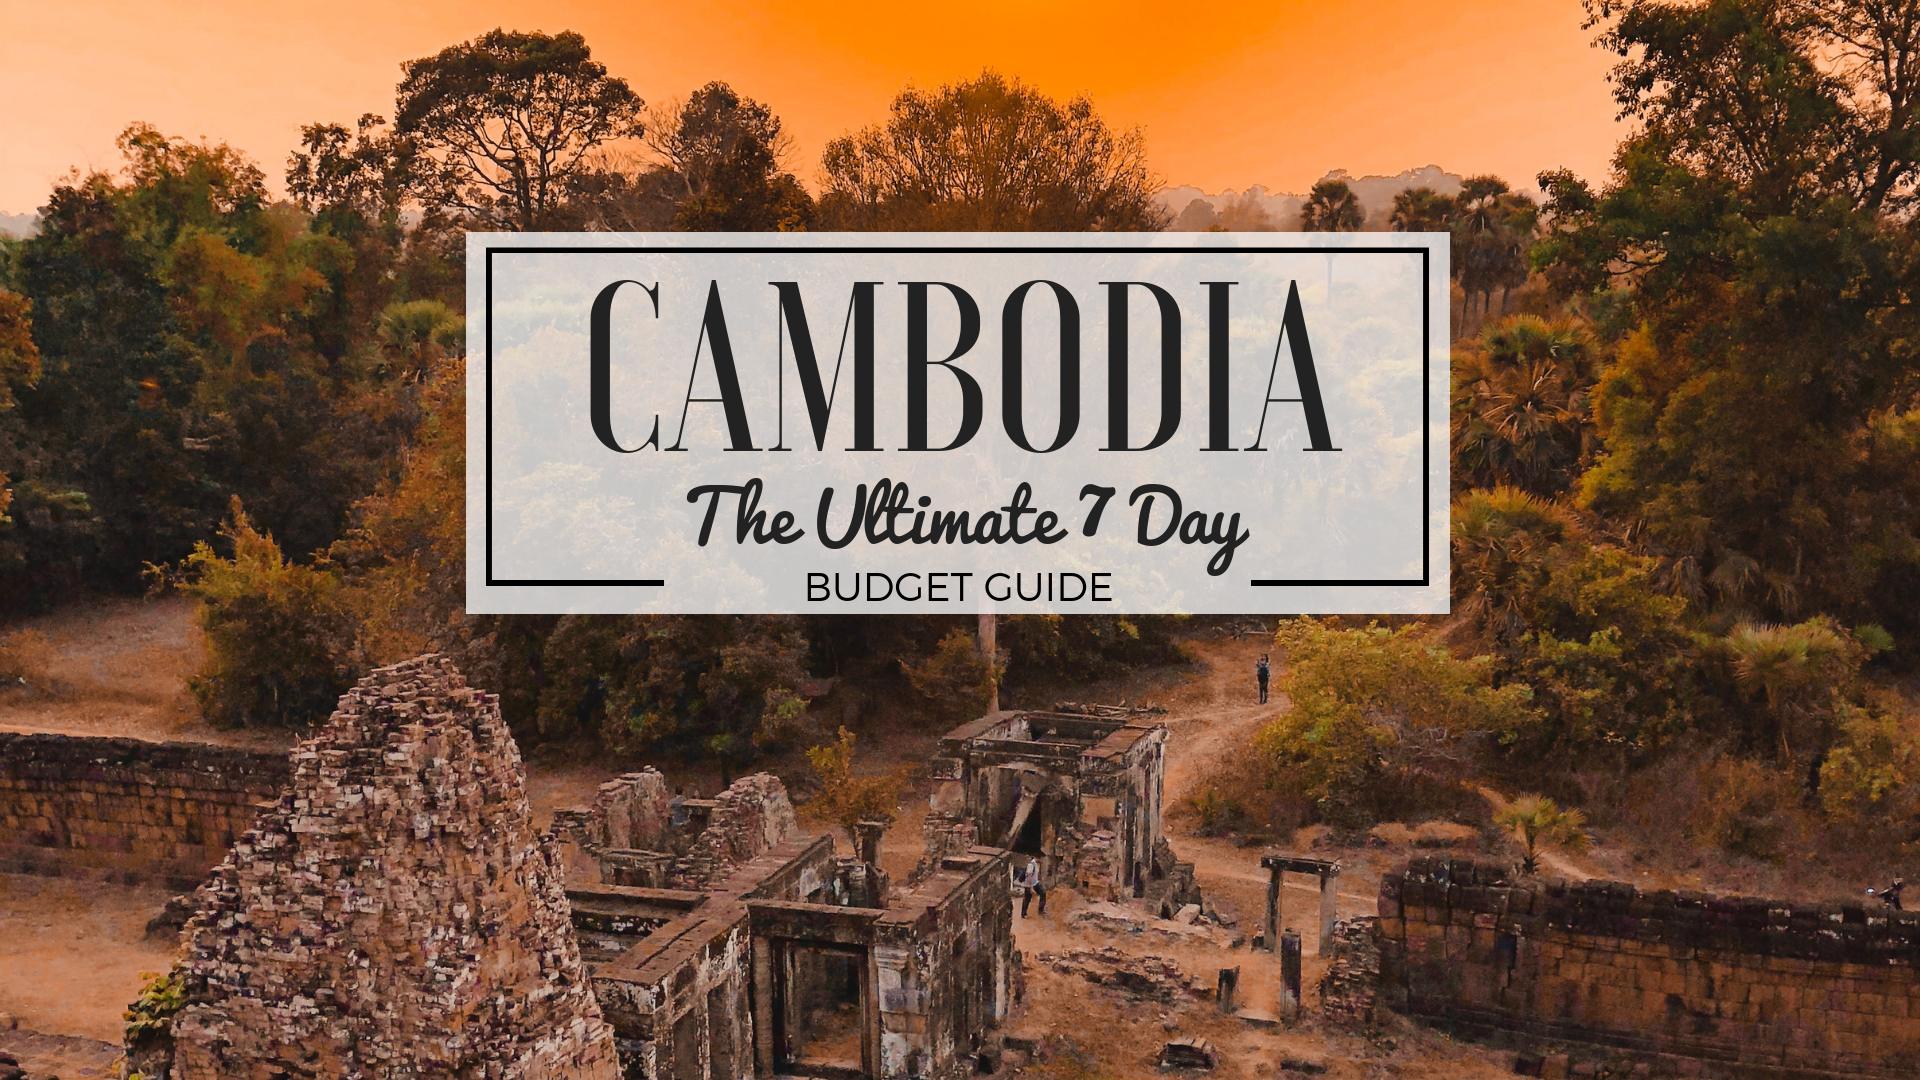 Cambodia The Ultimate 7 Day Budget Guide Blog Post, Ever The Wanderer